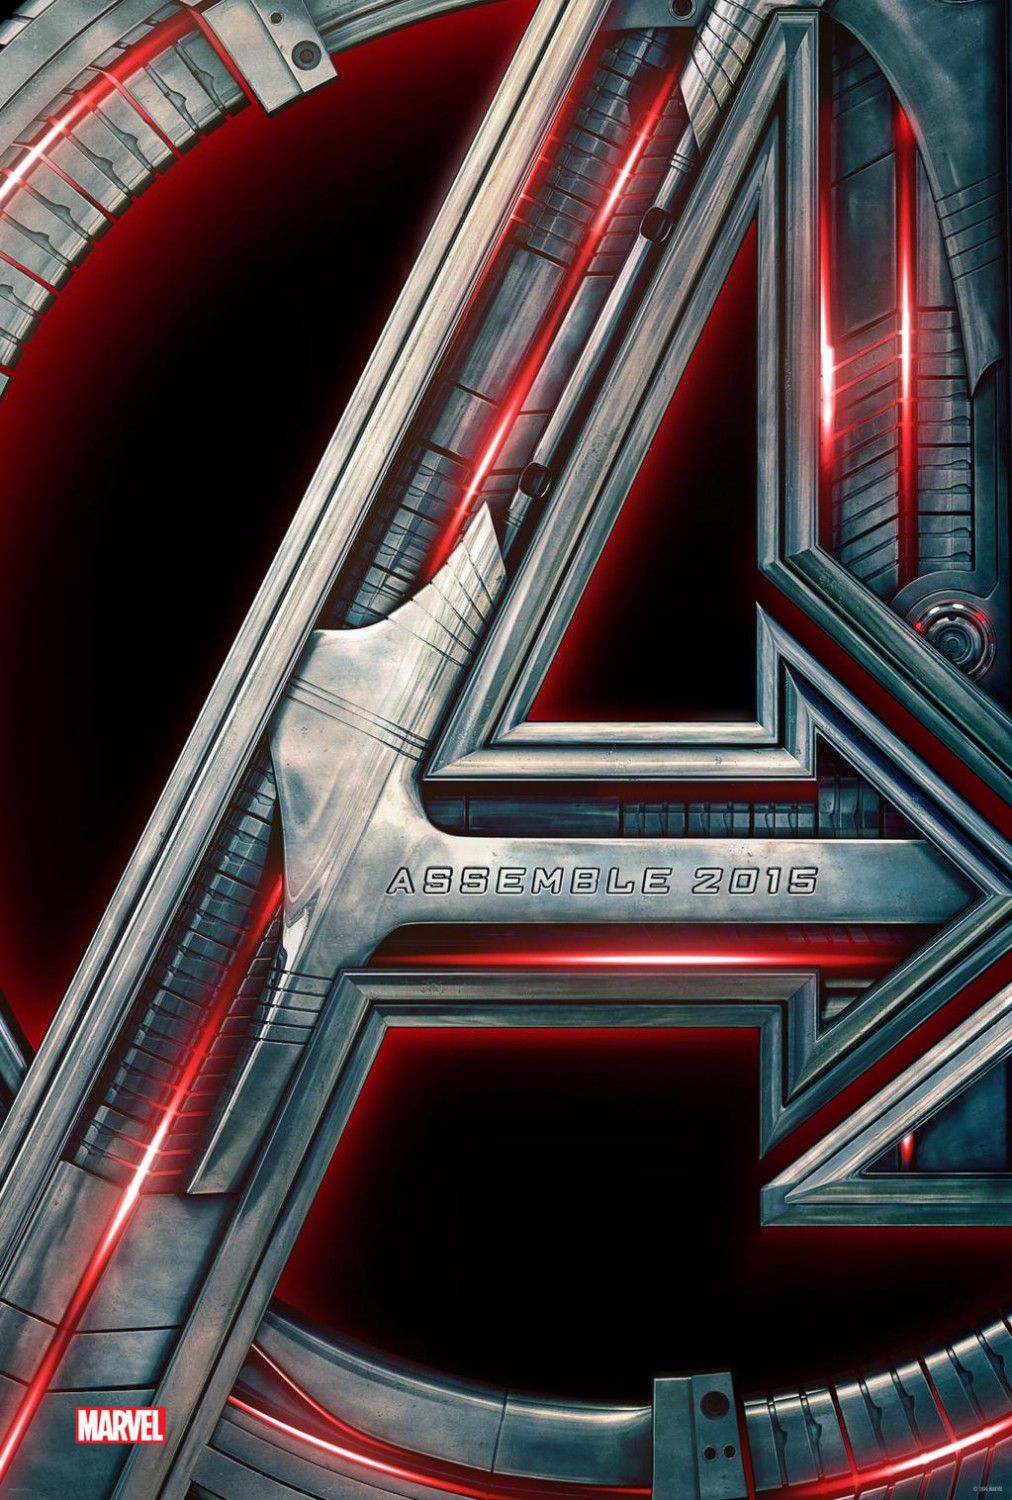 Film - Avengers 2 - Age of Ultron